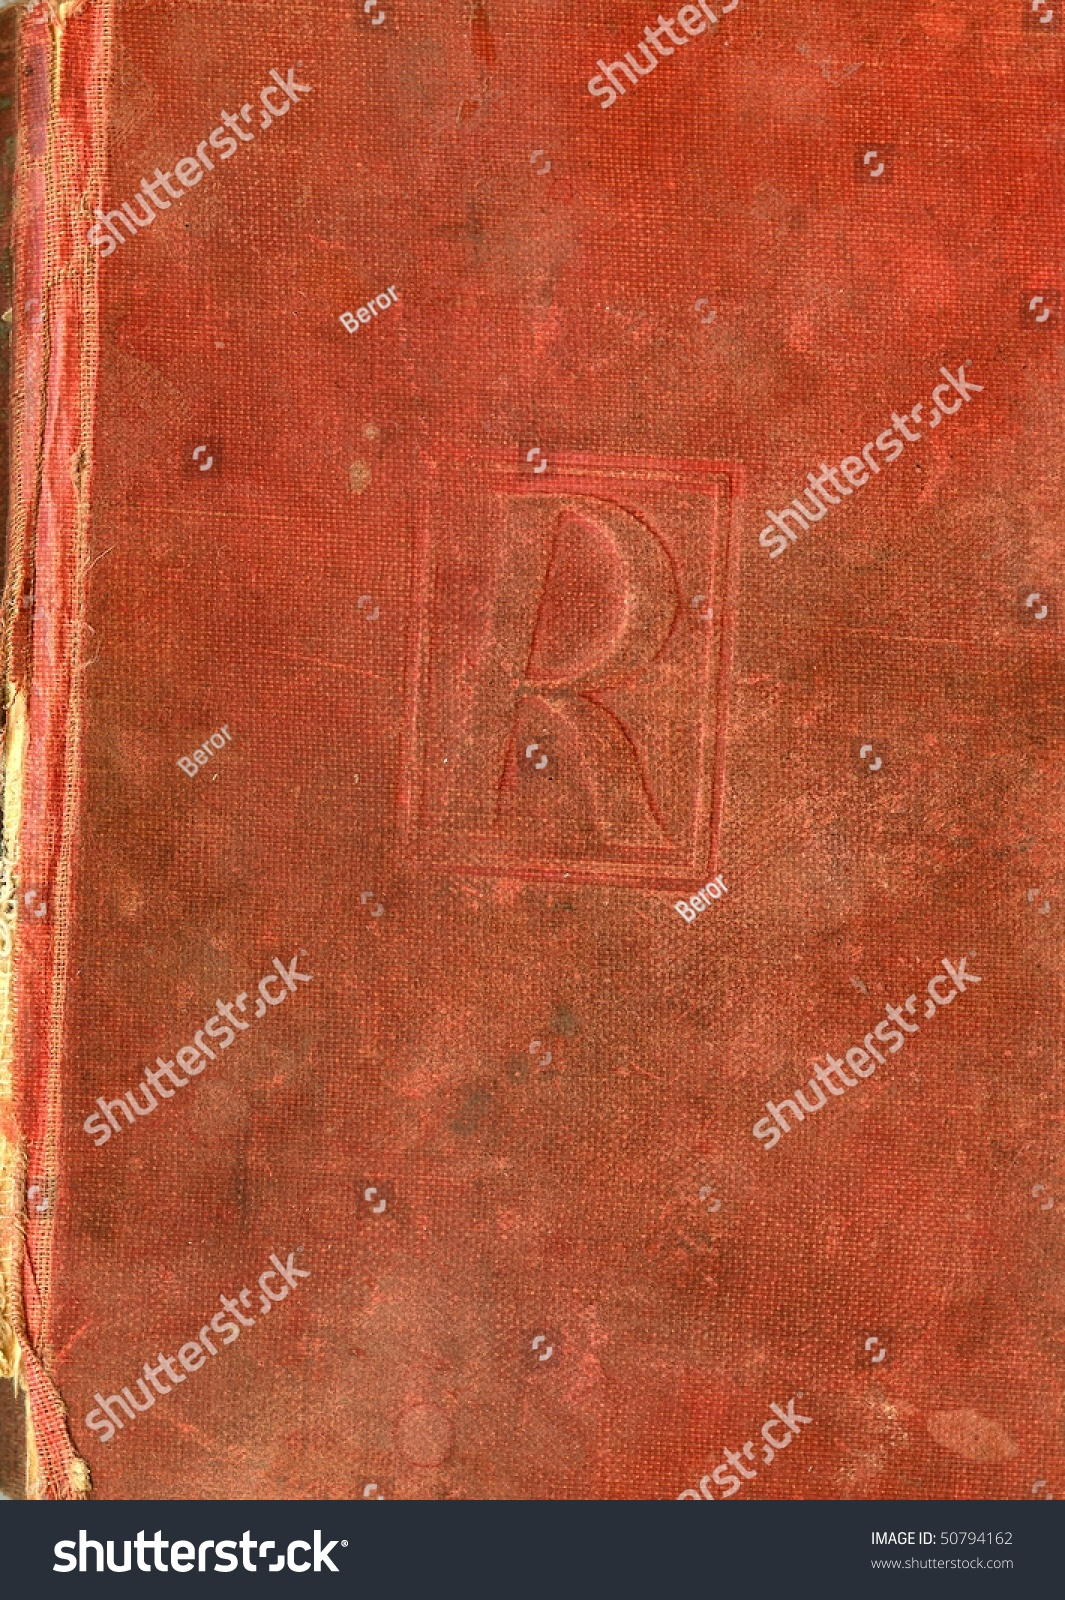 Old Red Book Cover : Front cover old red book stock photo shutterstock